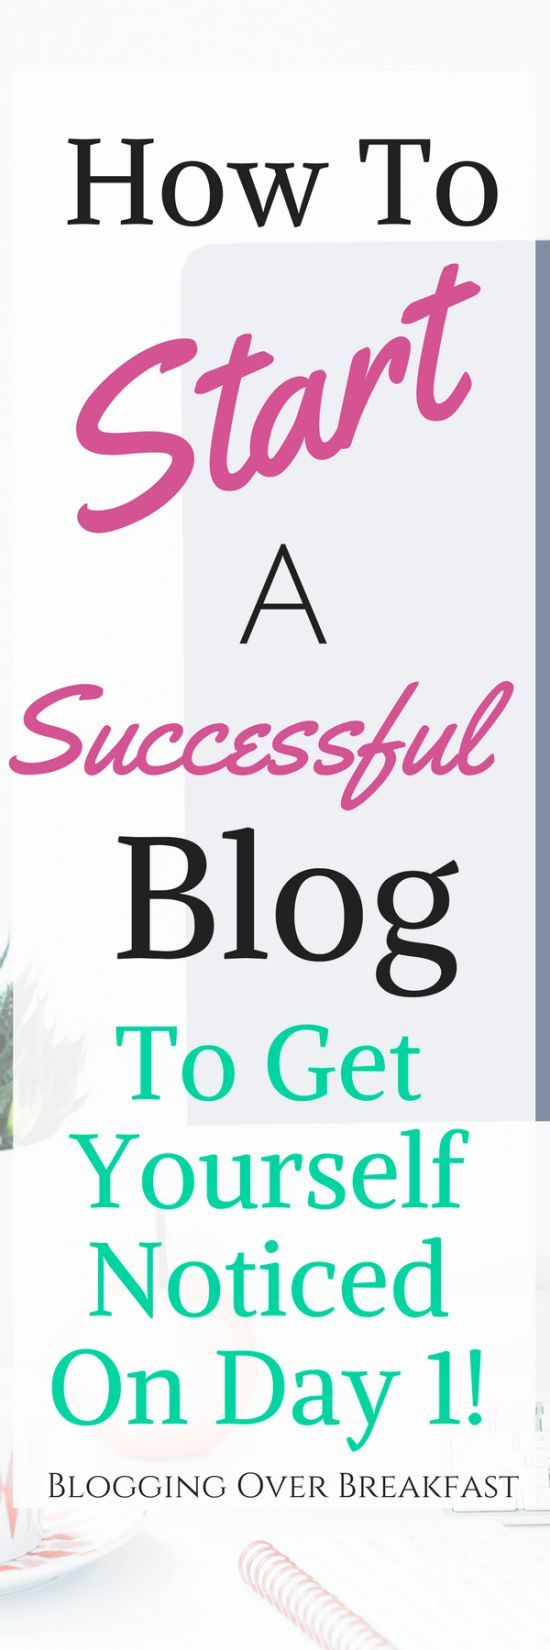 Starting a blog quick and starting a successful blog are two different things!  My first blog was quick and took me forever to get established.  The tips in this post helped me with my second blog to take off right away! #bloggingforbeginners #bloggingtips #blogging #howtostartablog #blog #bloggingoverbreakfast